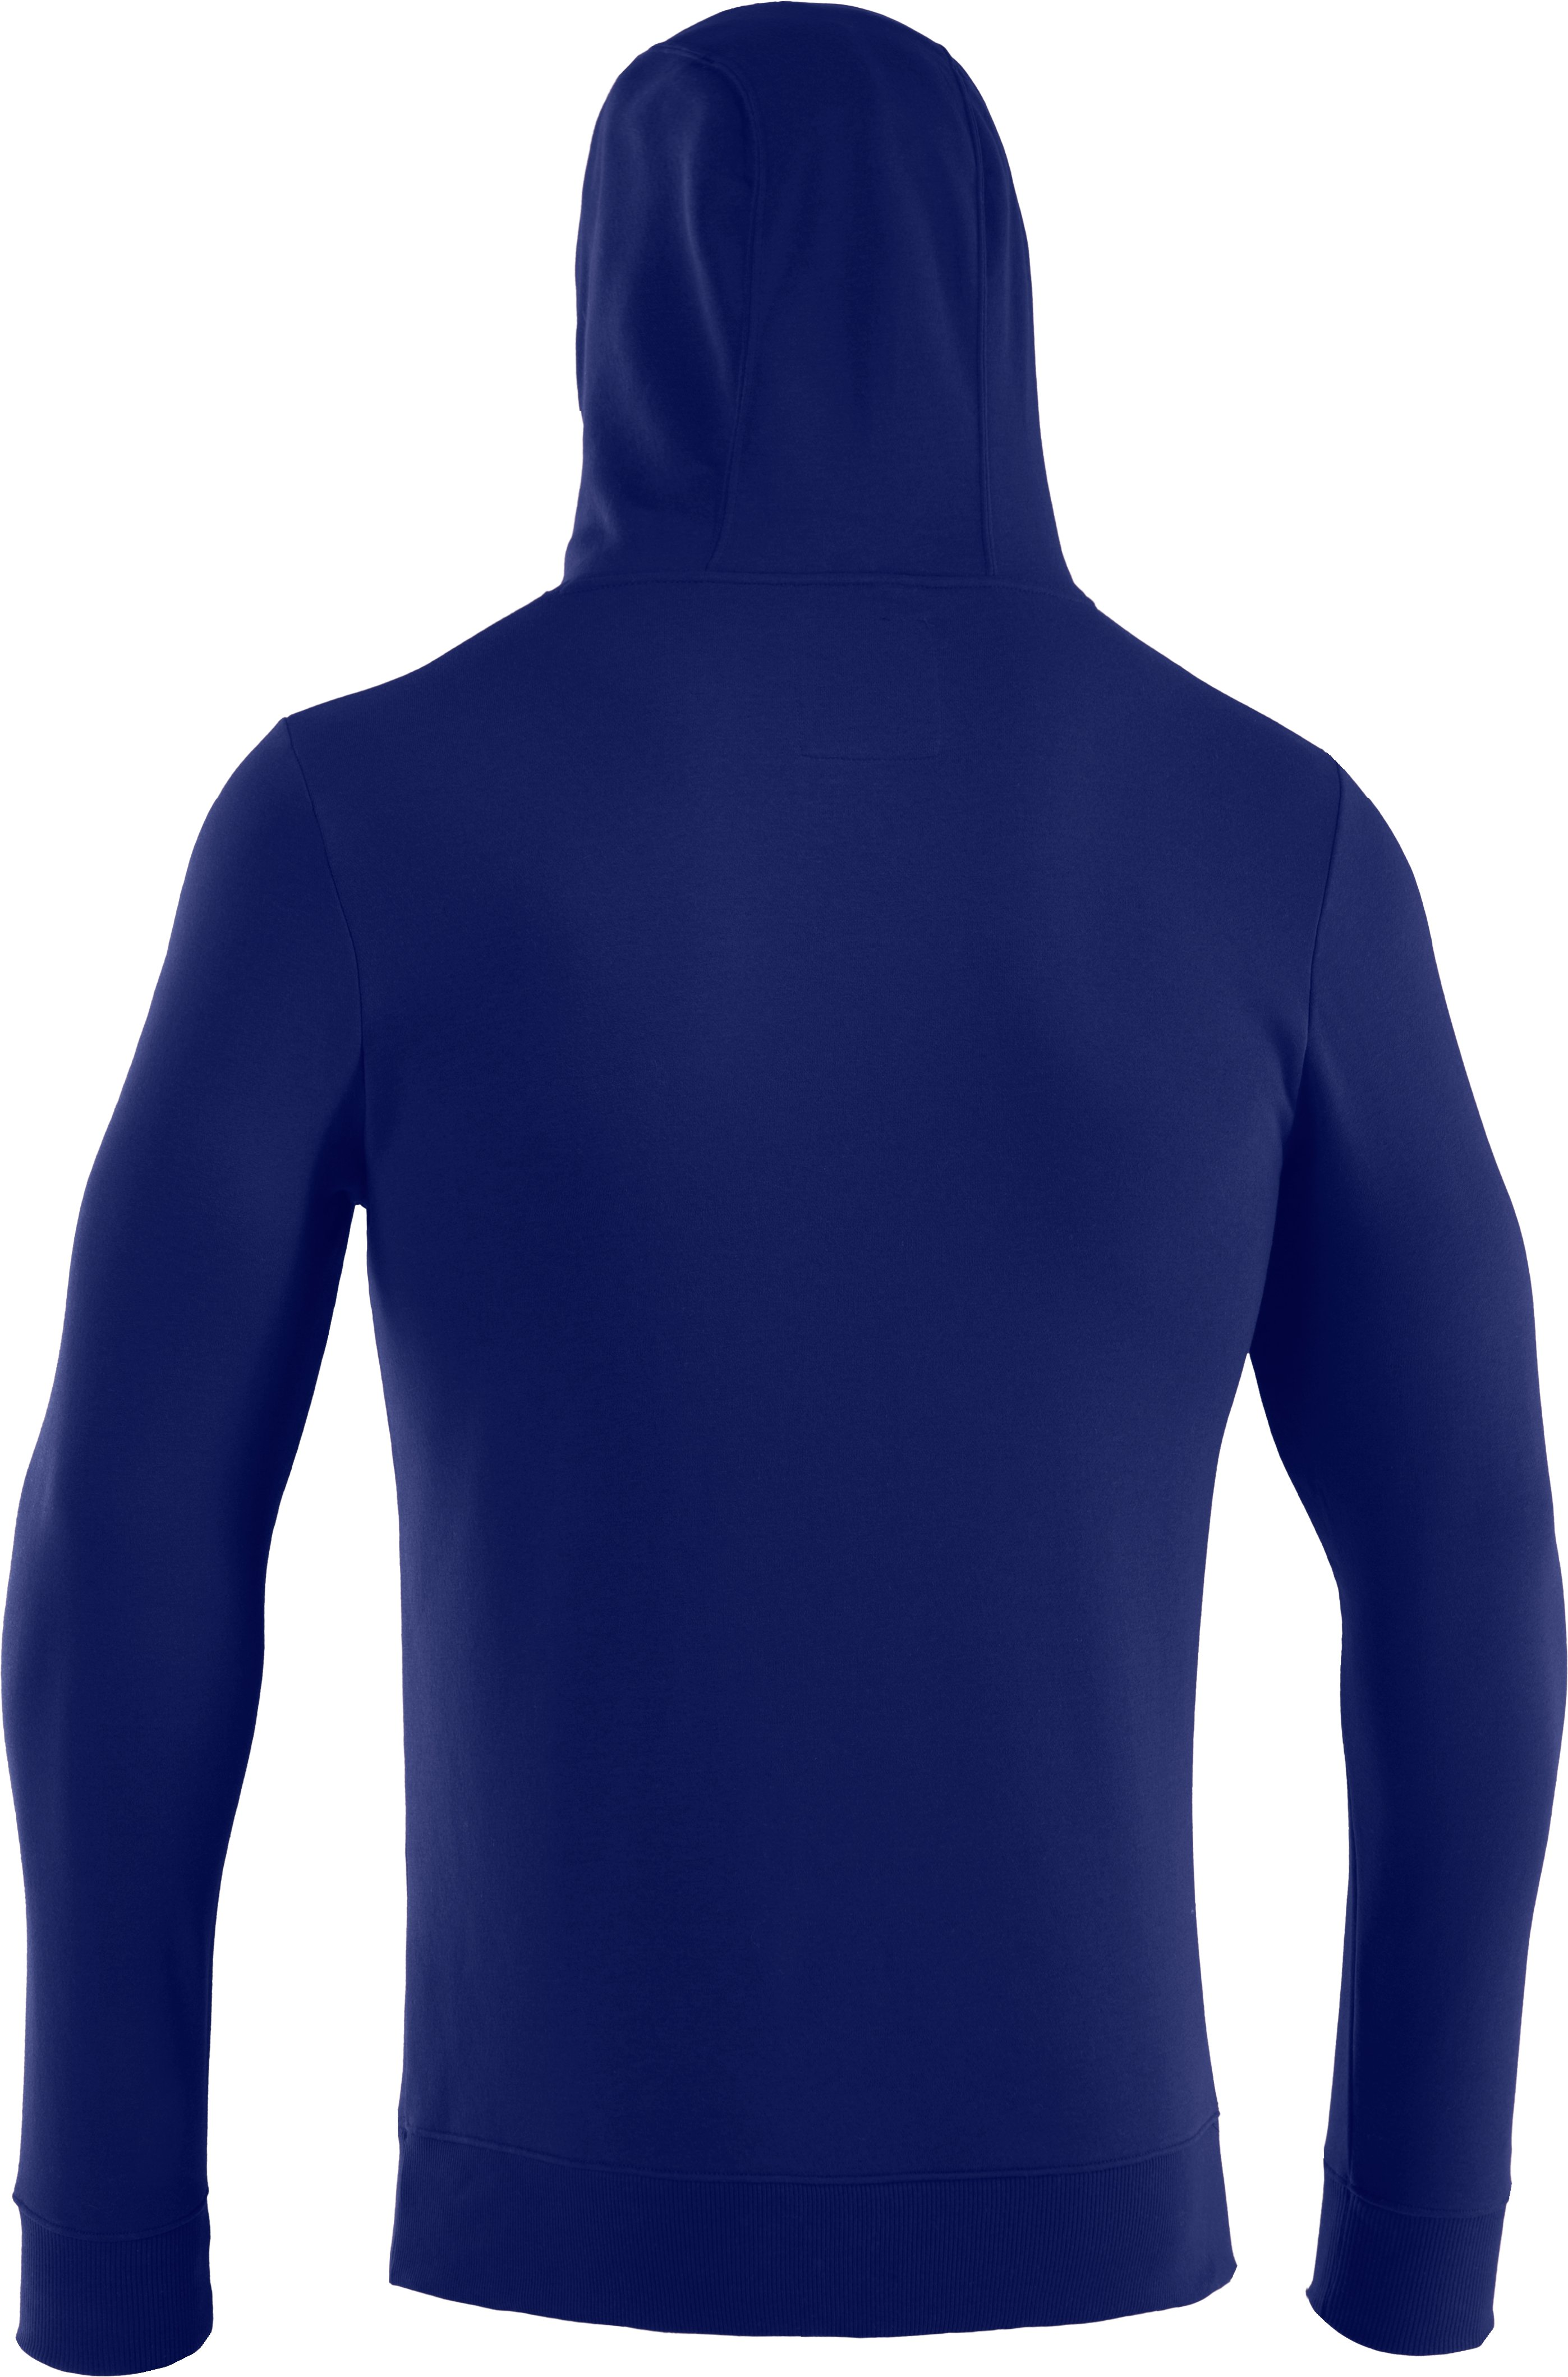 Men's Charged Cotton® Storm Battle Hoodie, Bauhaus Blue, undefined